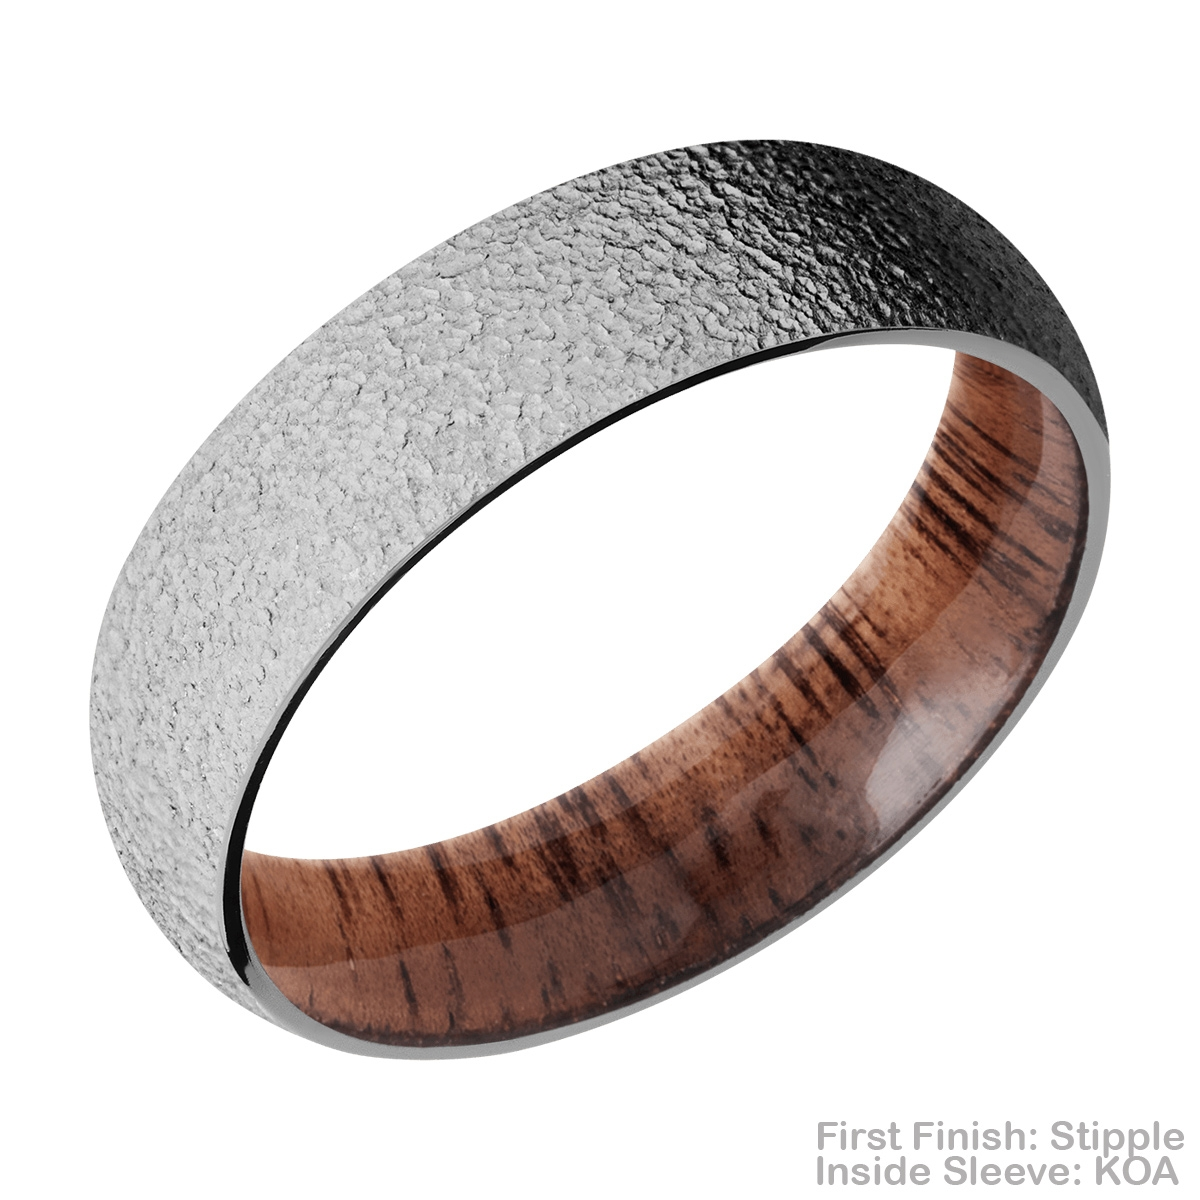 Lashbrook HWSLEEVECC6D Cobalt Chrome and Hardwood Wedding Ring or Band Alternative View 15